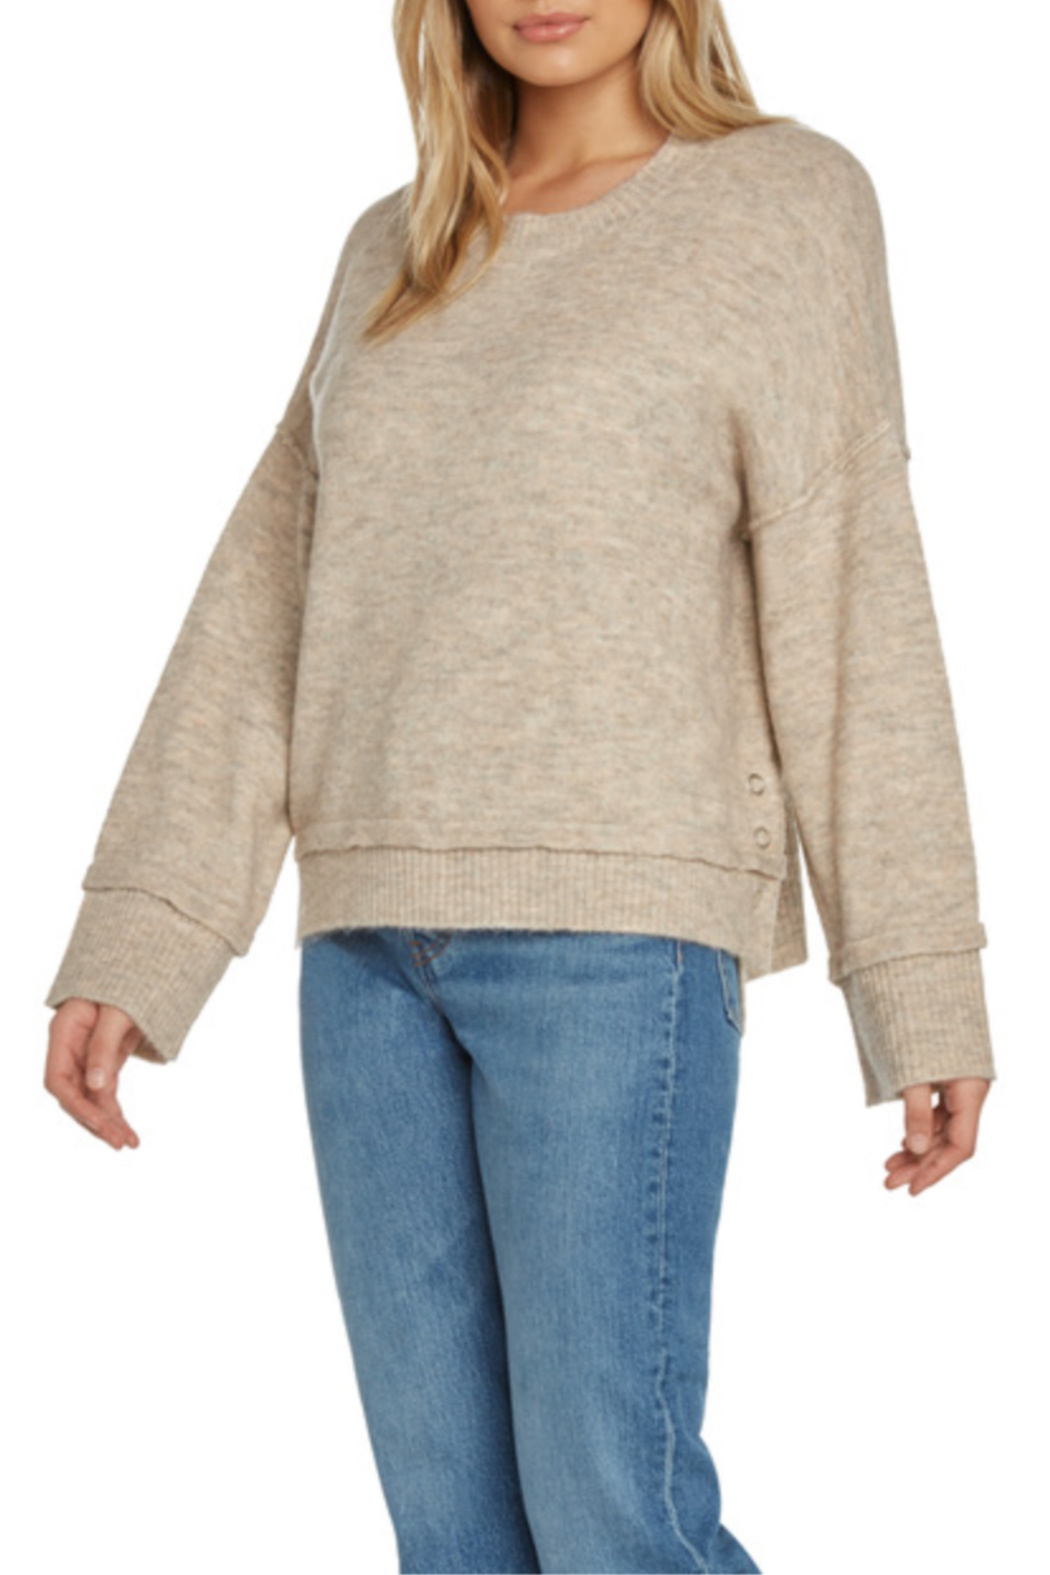 Willow & Clay Contrast Rib Soft Knit Sweater w Side Snaps - Main Image